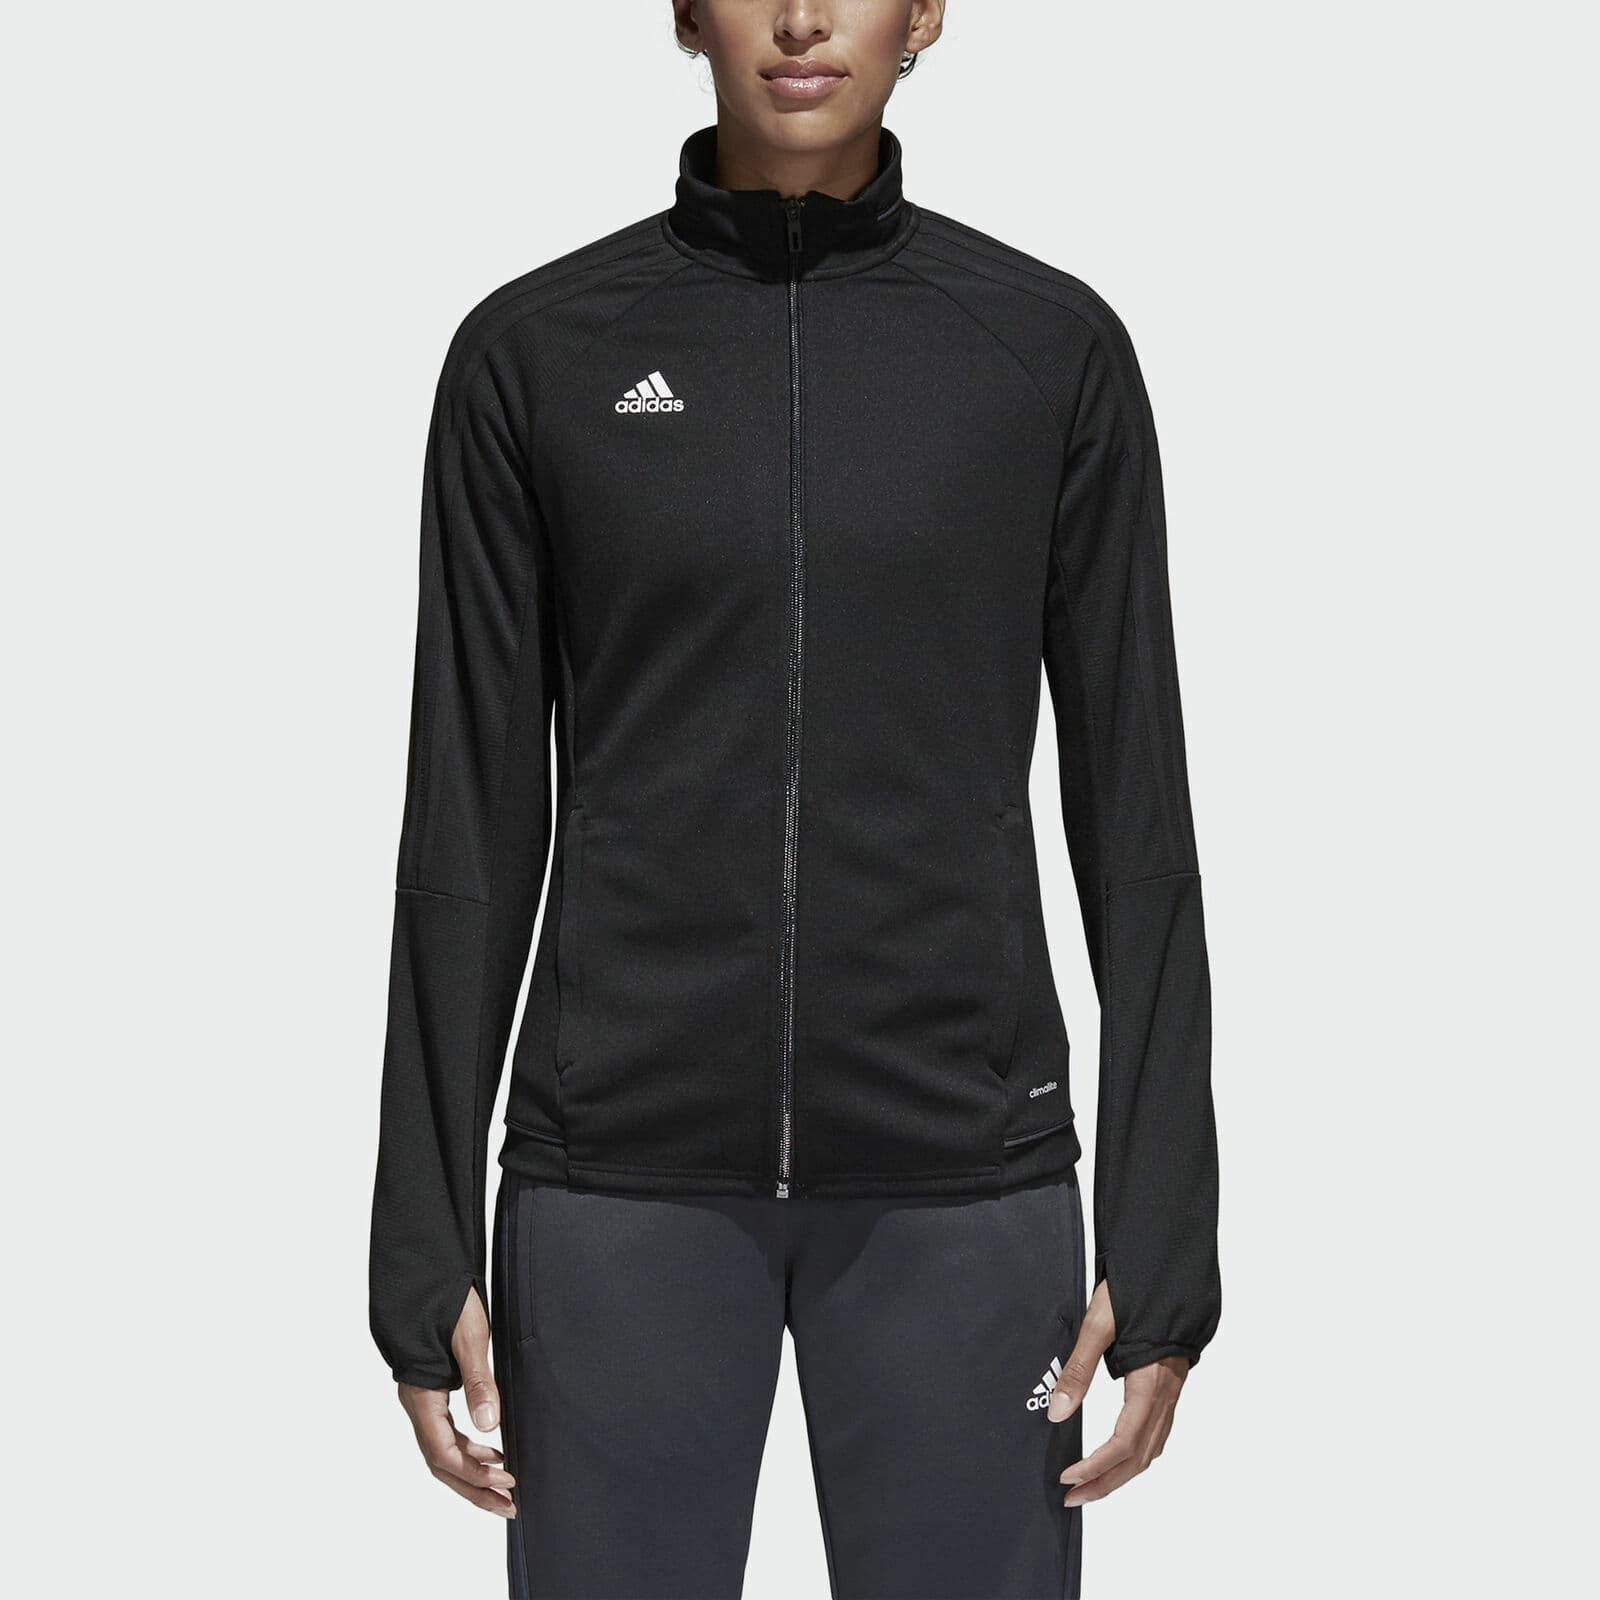 0633b9df275 Extra 25% Off adidas Apparel  Women s Tiro 17 Training Jacket ...